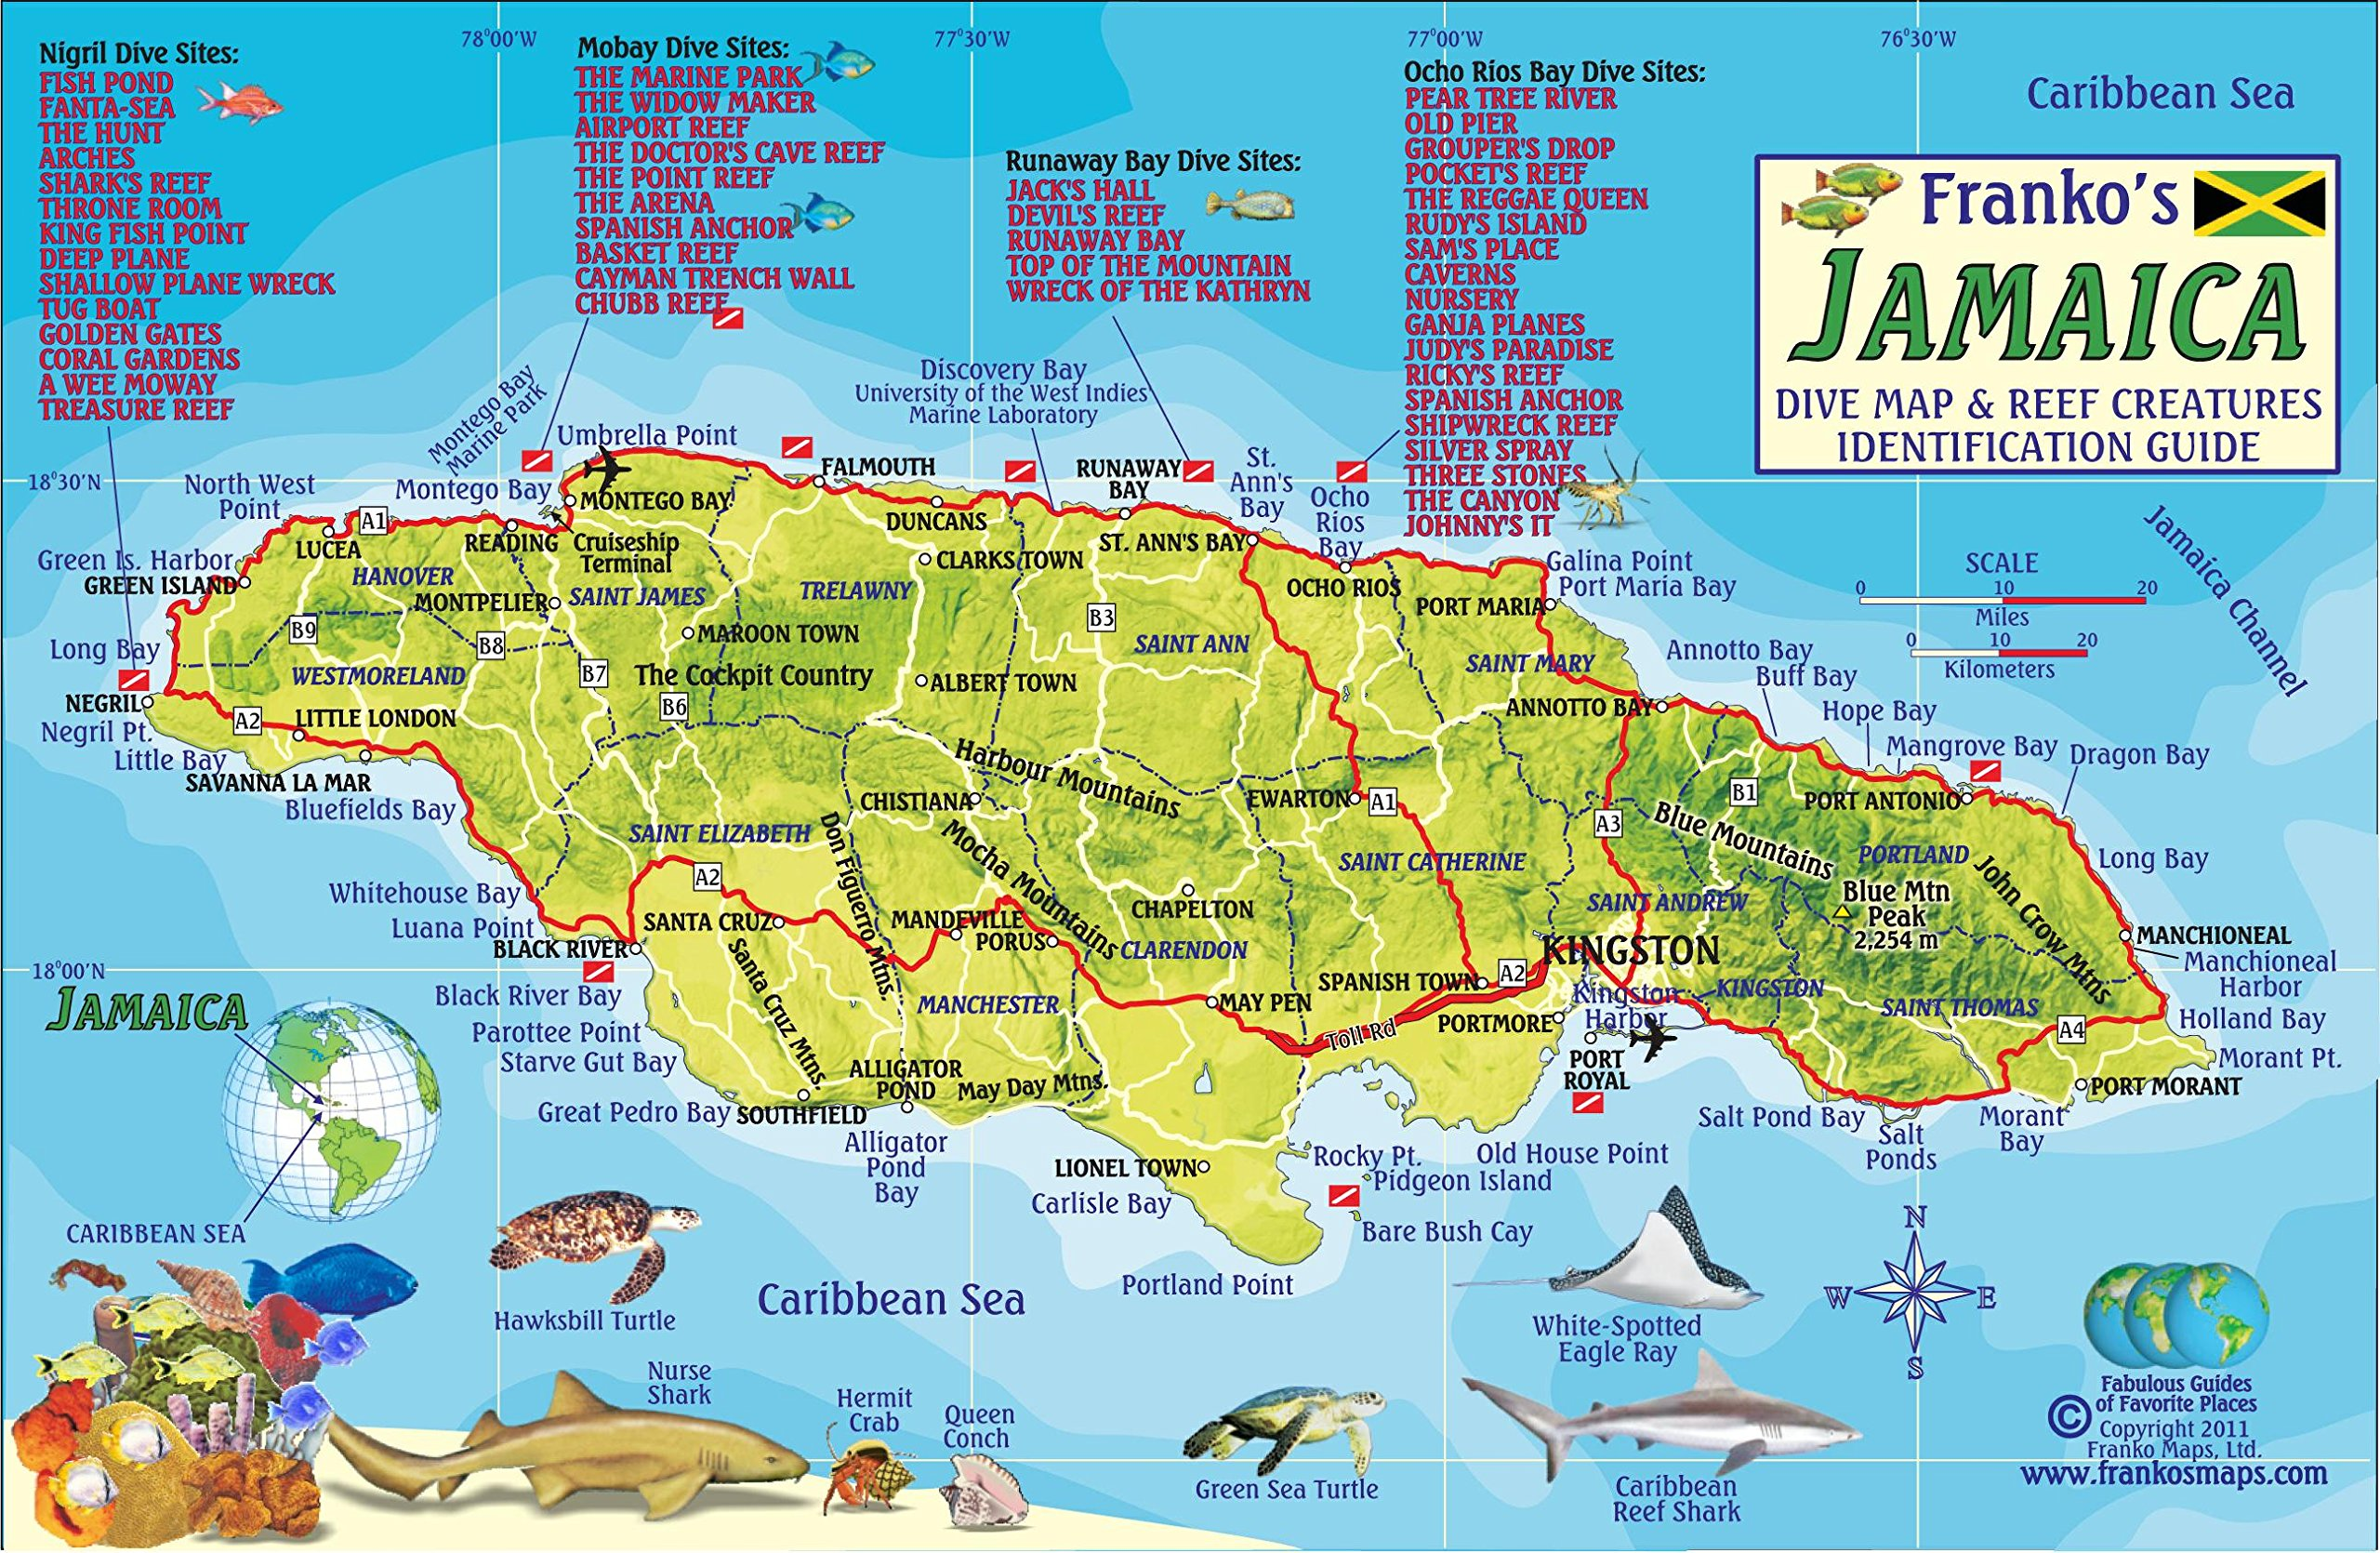 Jamaica Dive Map Coral Reef Creatures Guide Franko Maps - Jamaica map